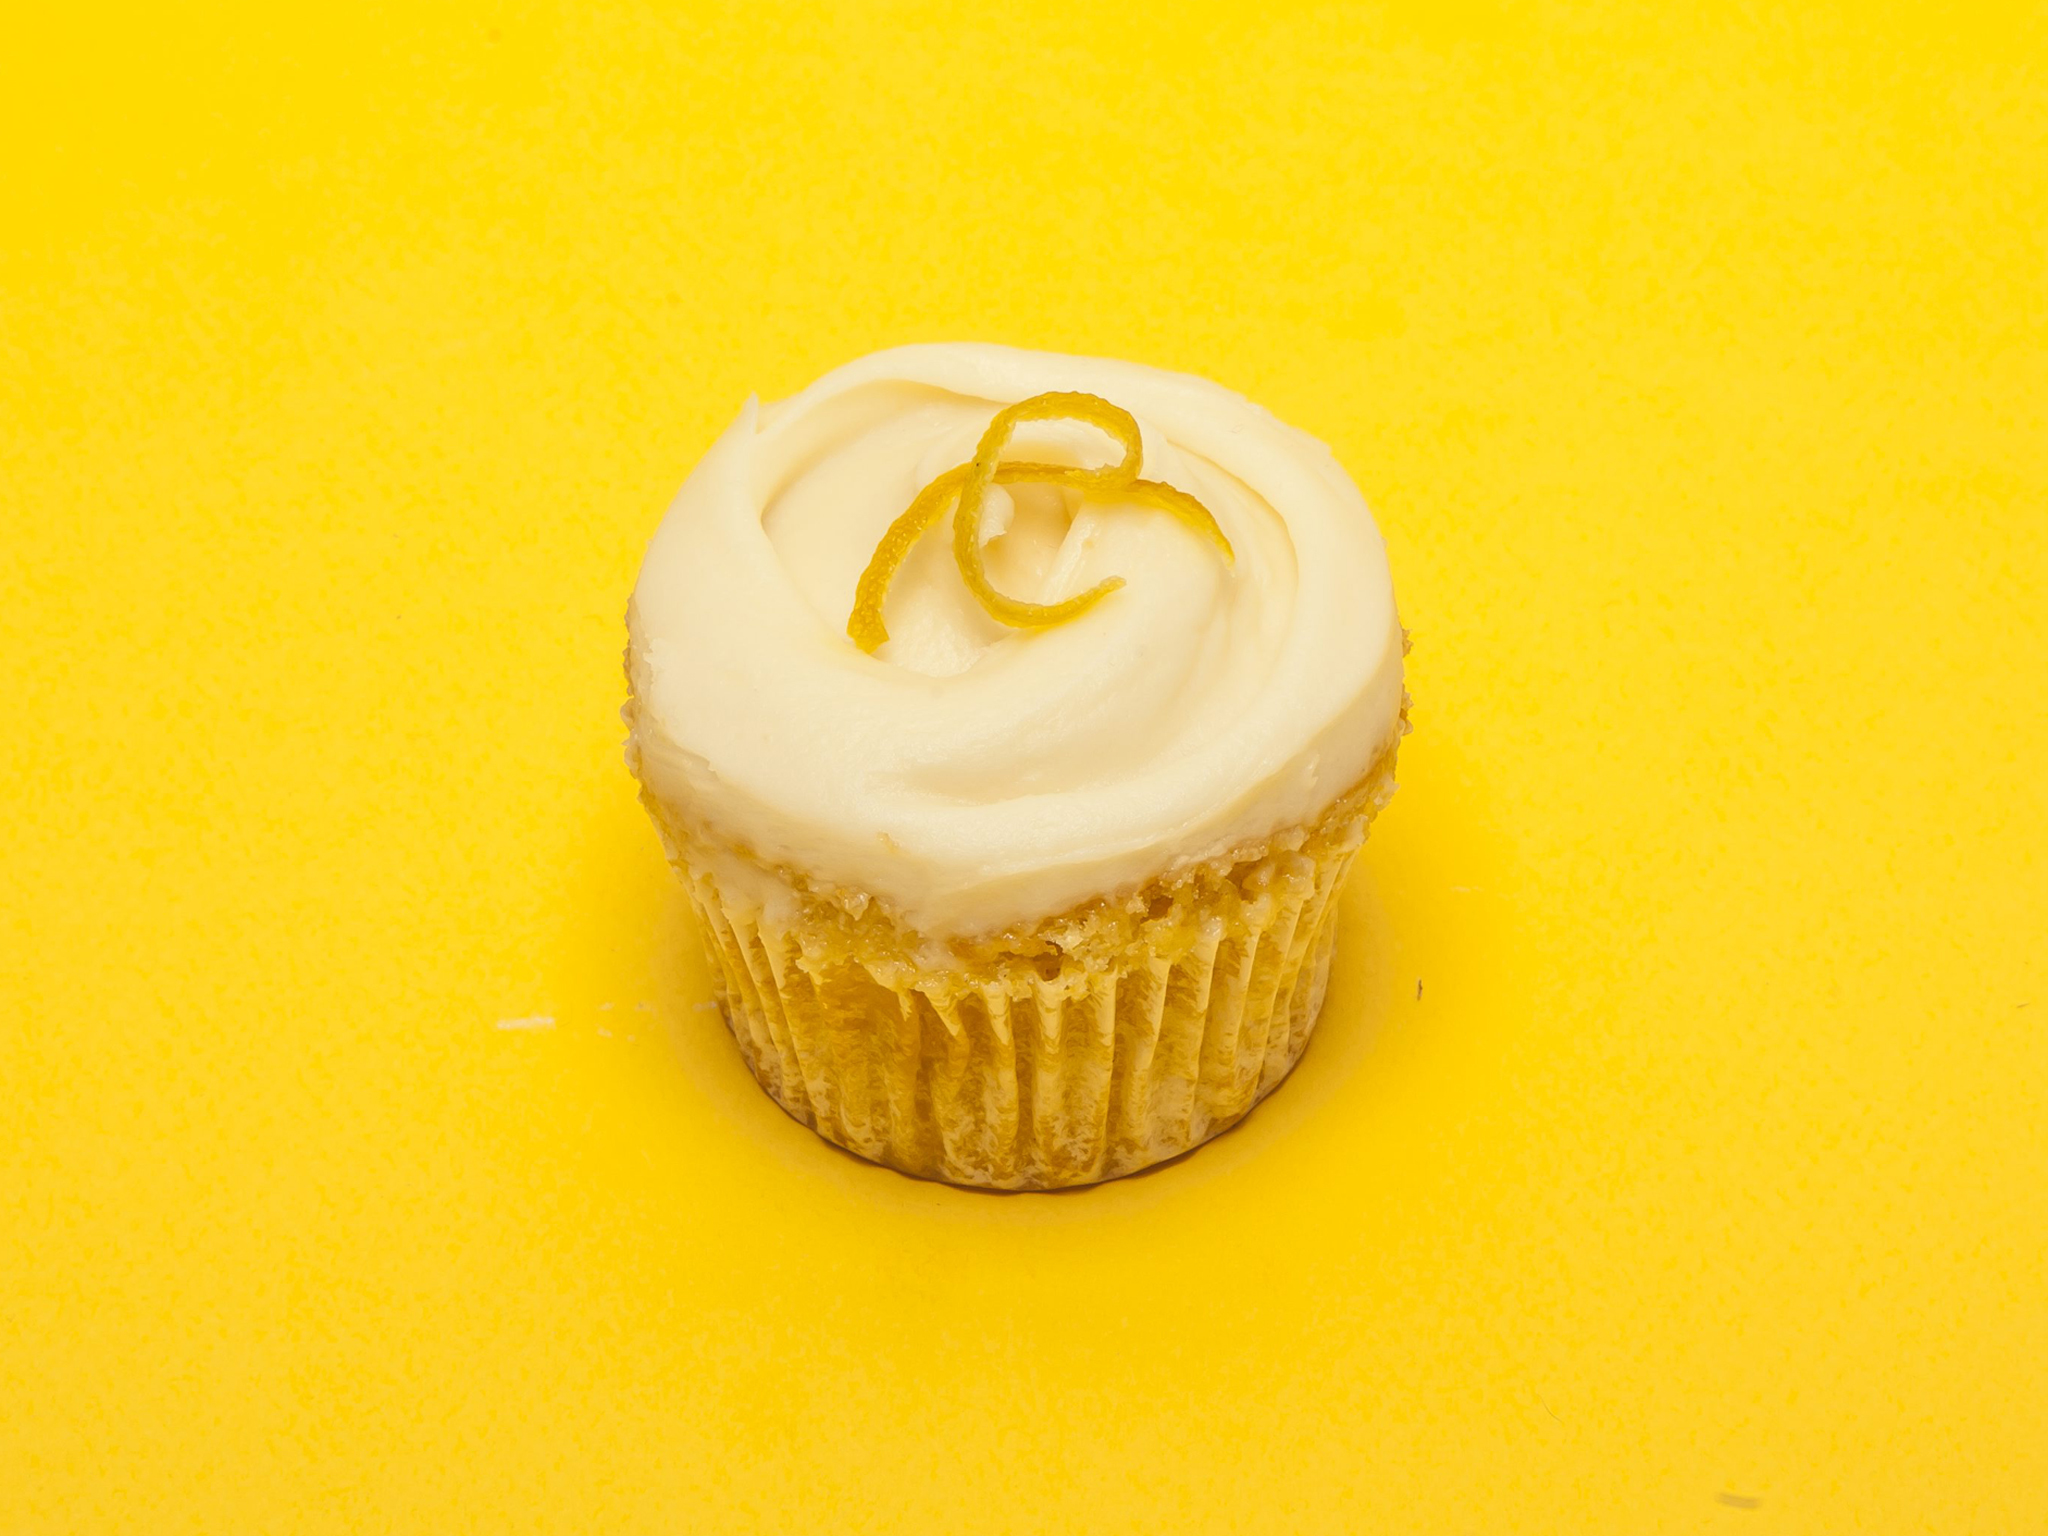 Gin-and-tonic cupcake at Primrose Bakery